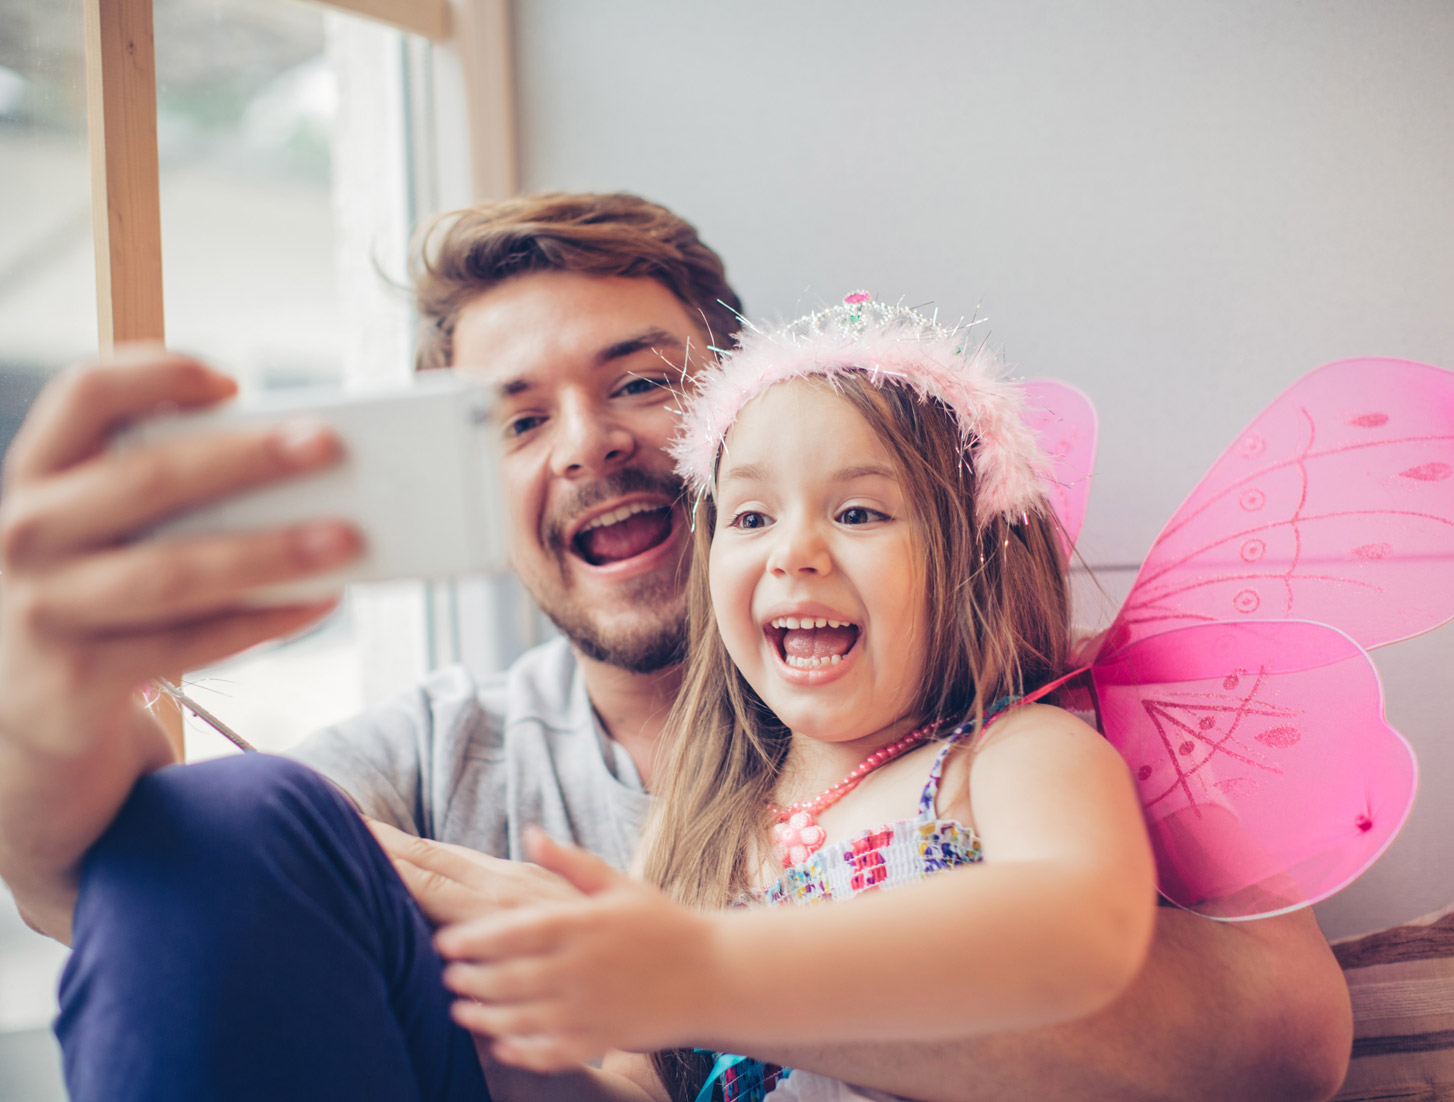 10 things to do with your Children that don't cost a fortune